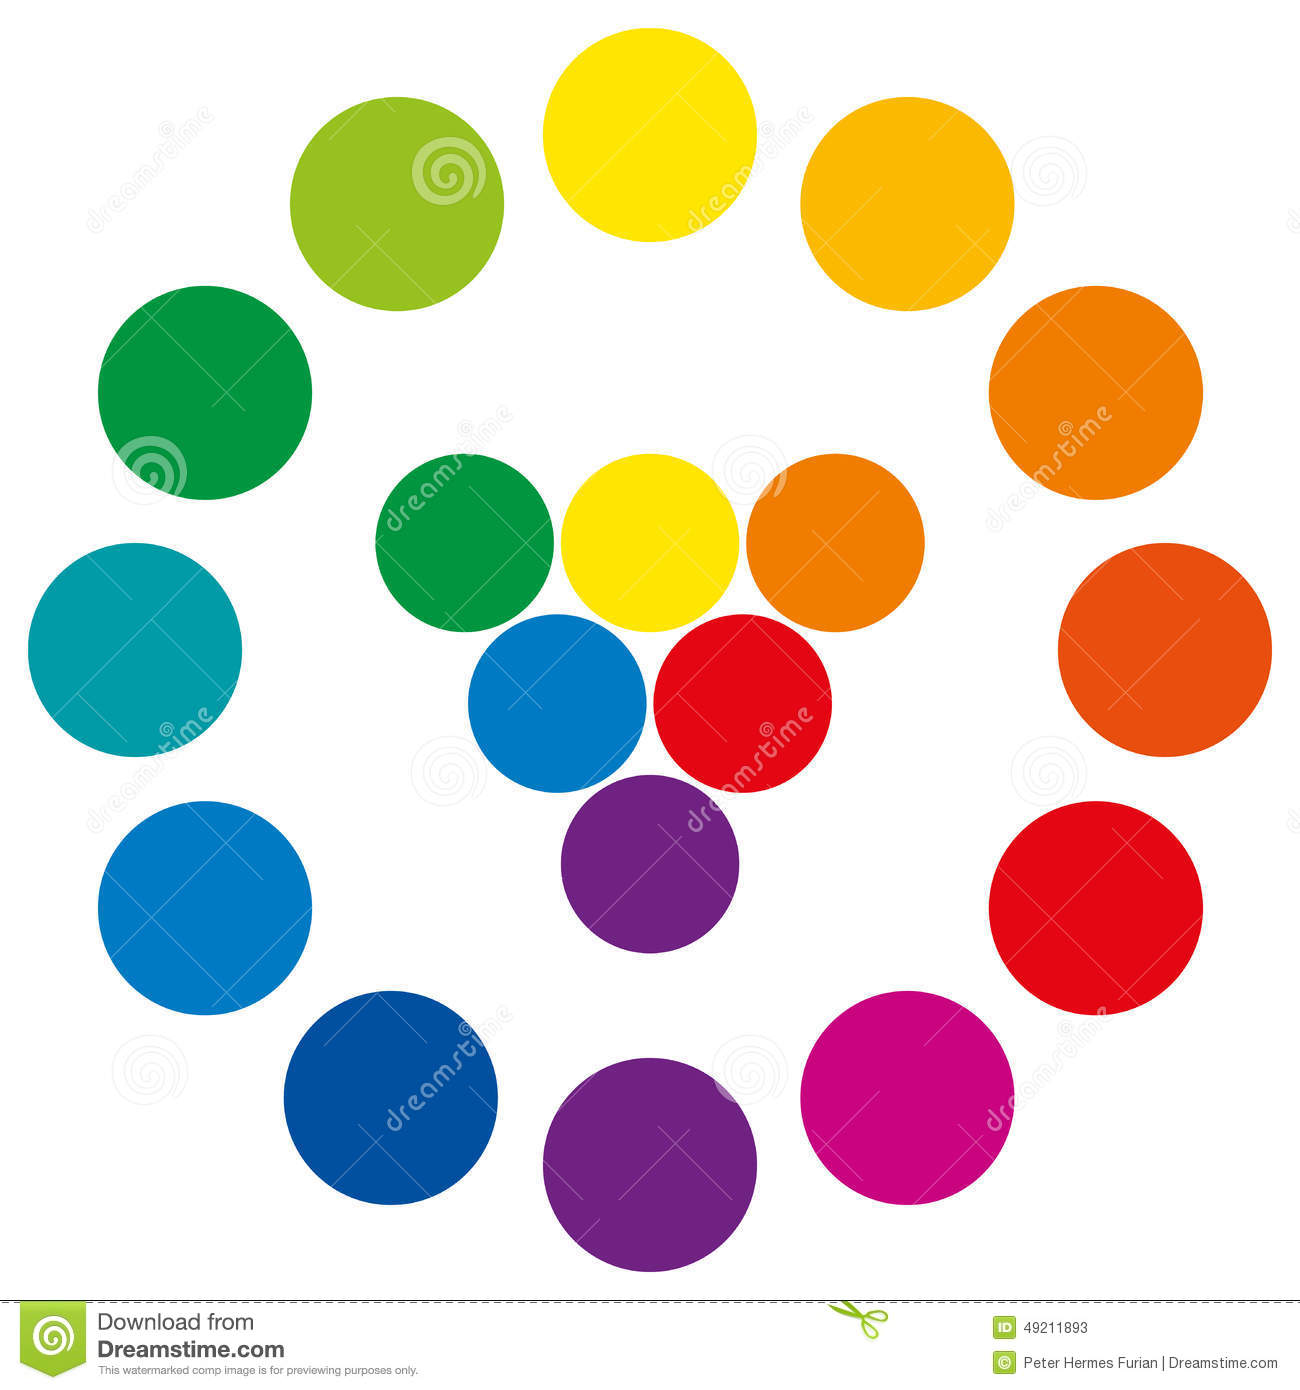 Color Wheel With Circles Stock Vector Illustration Of Complementary